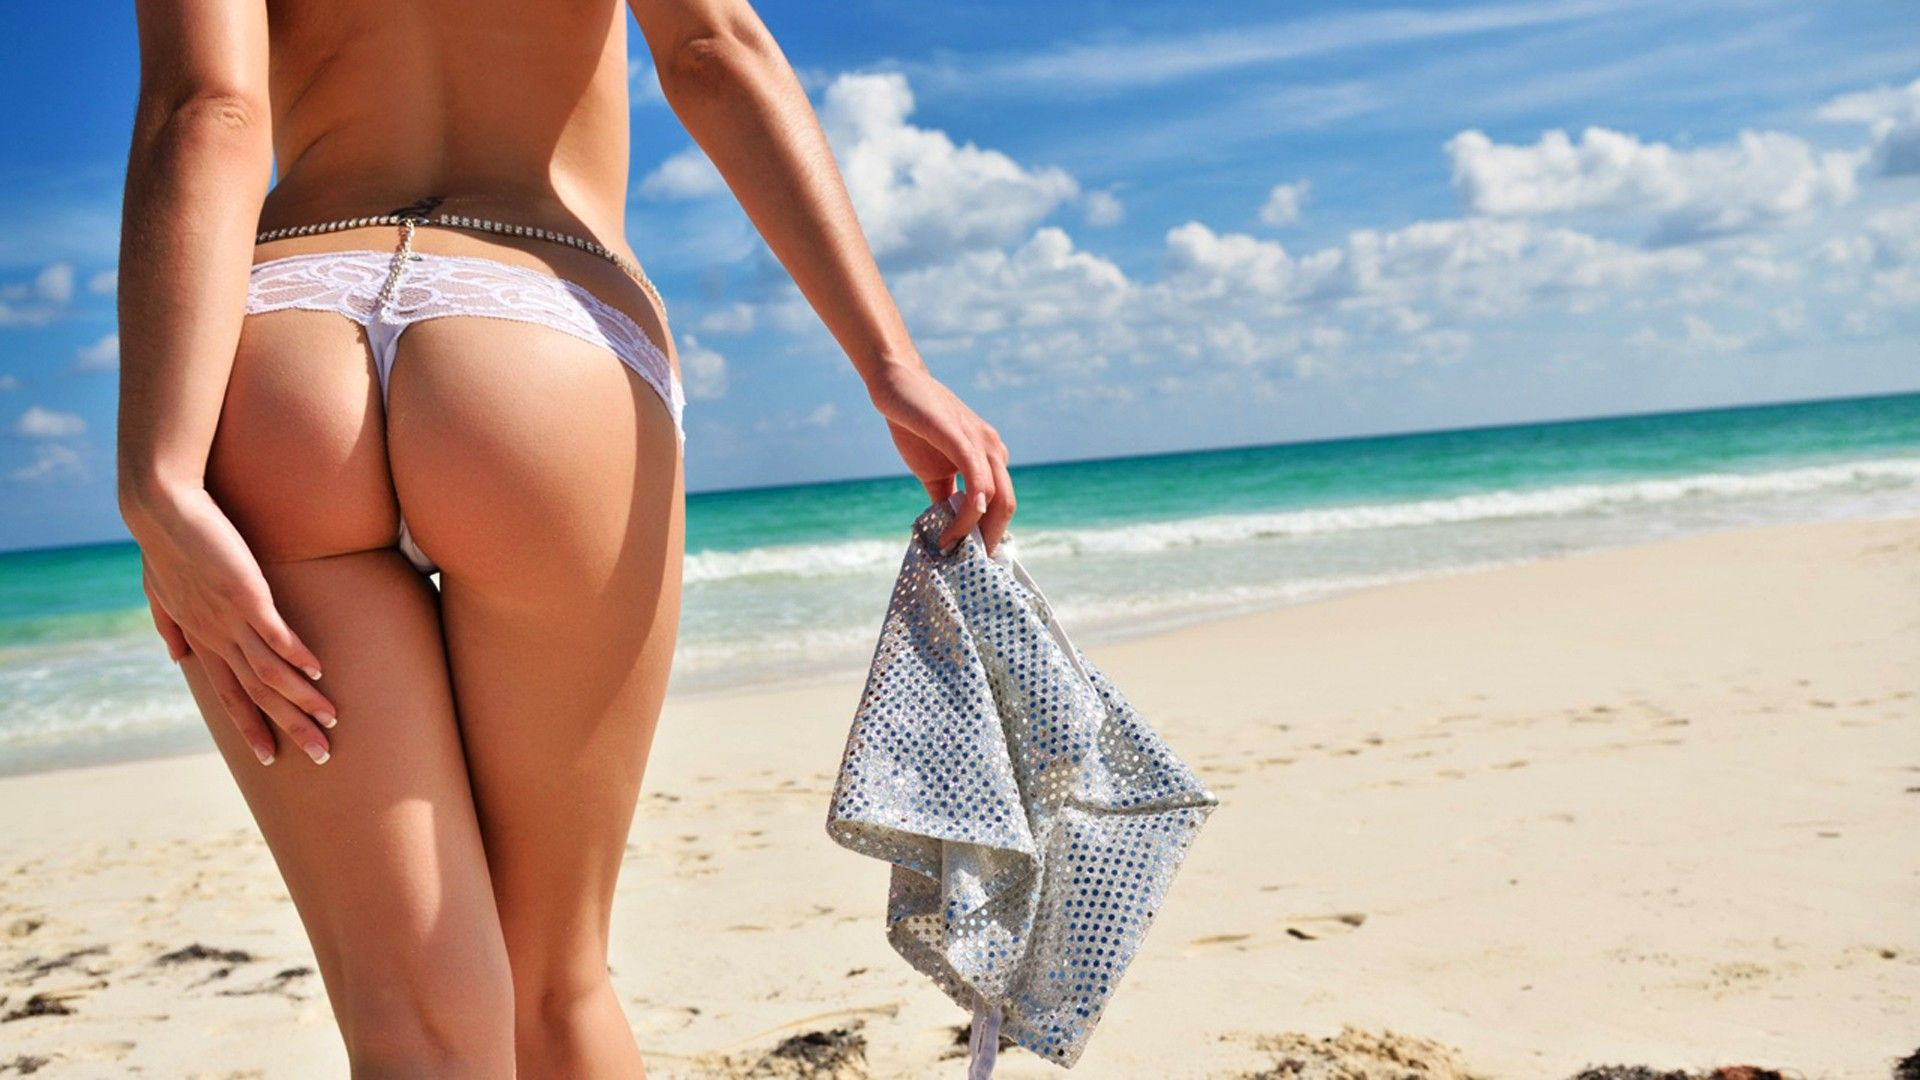 Hot beach babes hd remarkable, and